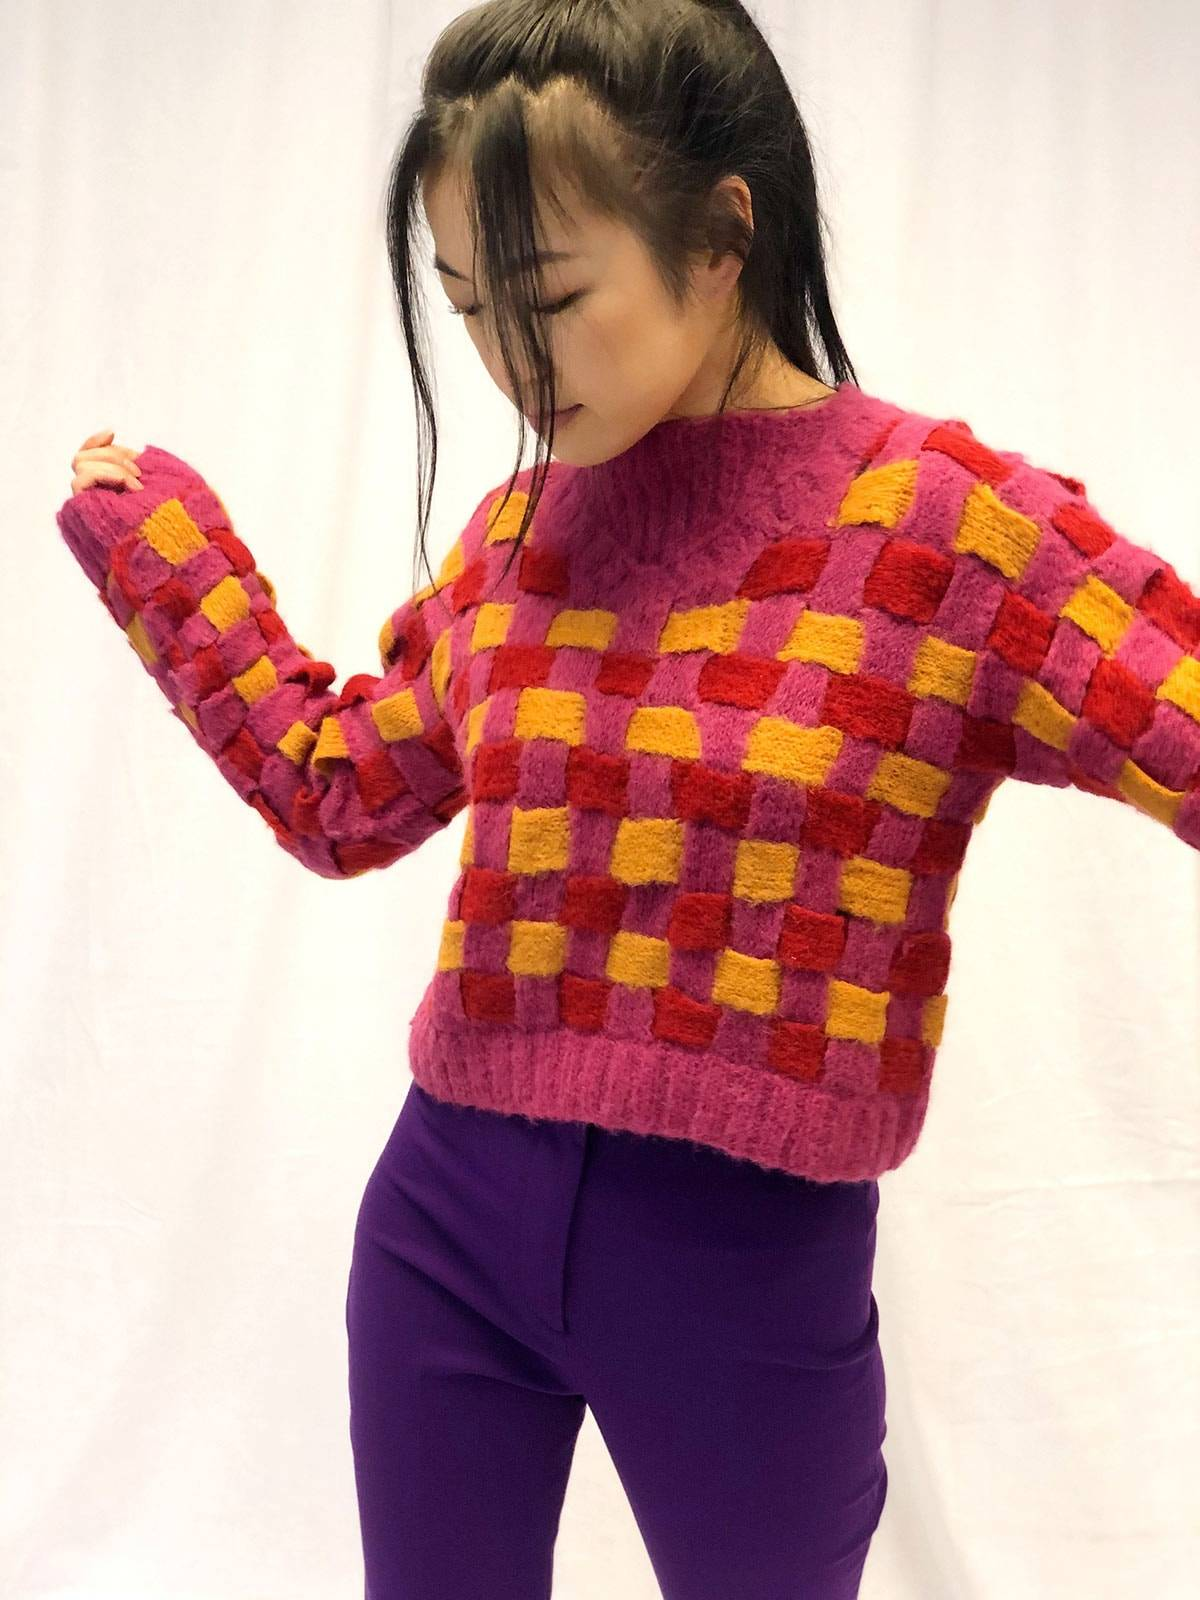 The top fashion trends 2021, and how to style them with knitwear